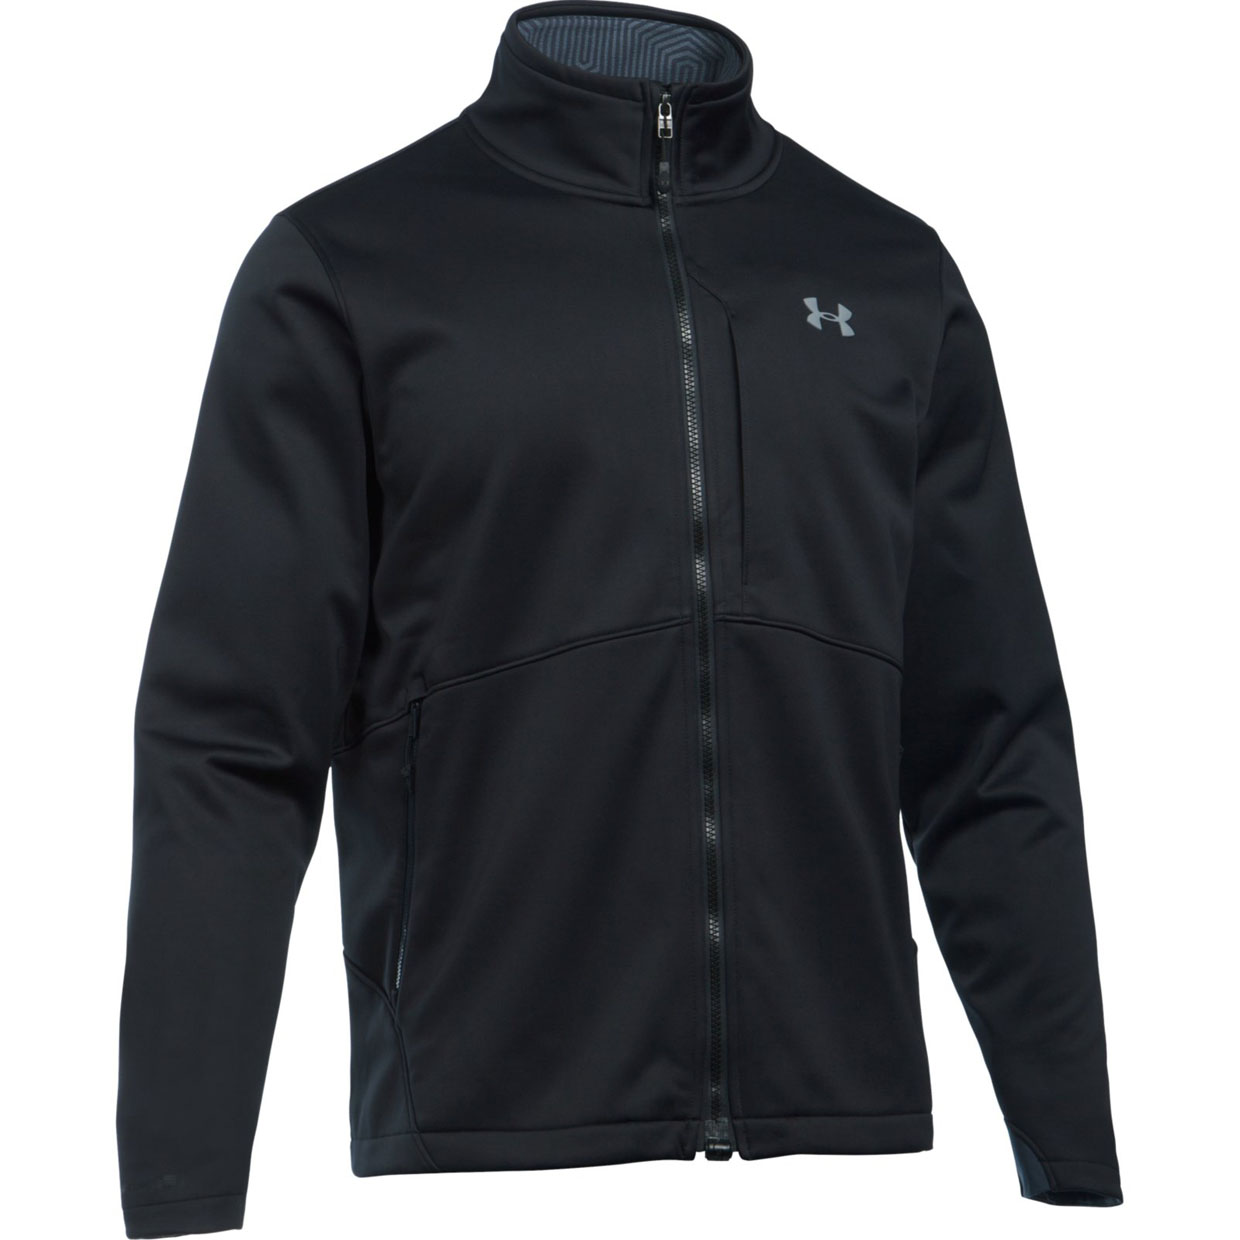 available from 10.11  Under Armour running blazer men 1280879-001